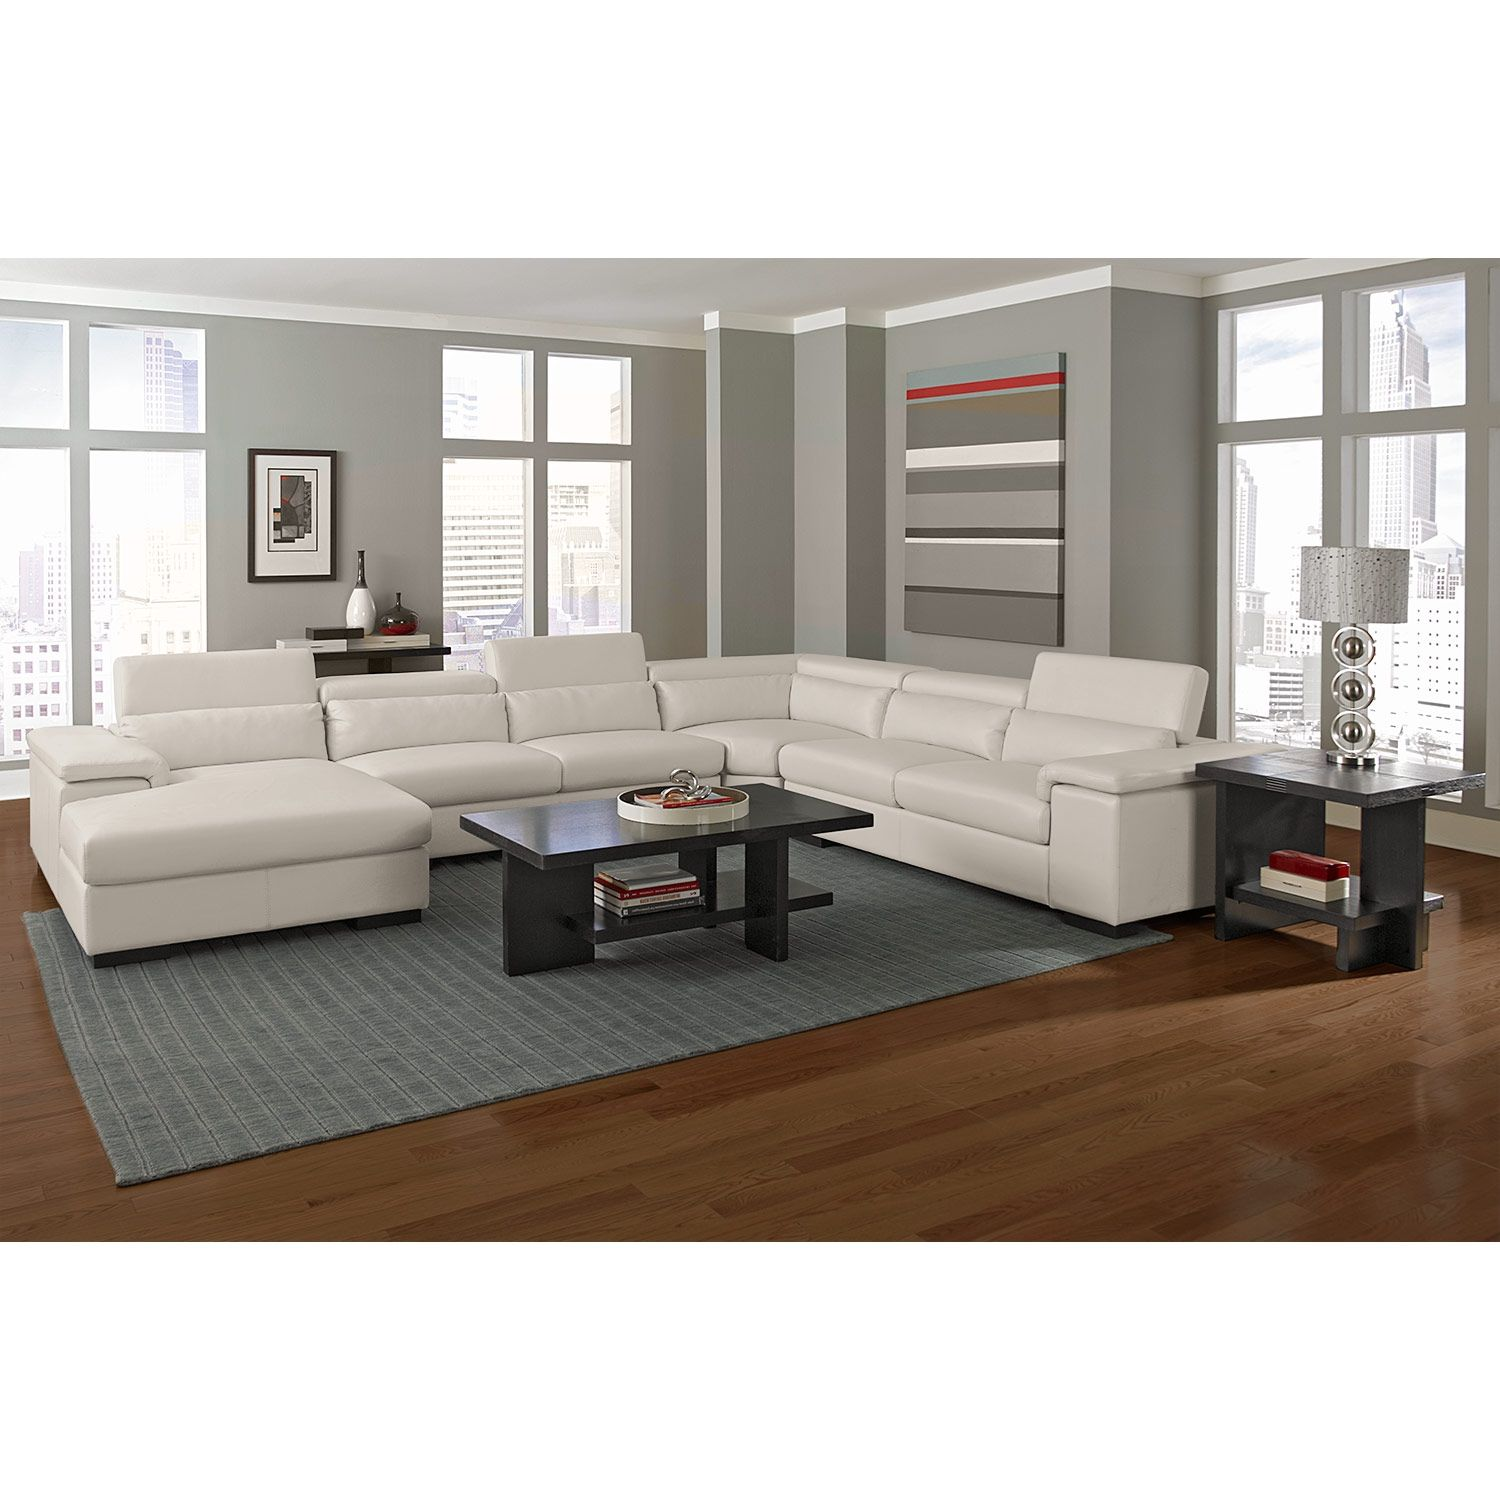 American Signature Furniture   Ventana Leather 4 Pc. Sectional (Reverse)  This Would Be